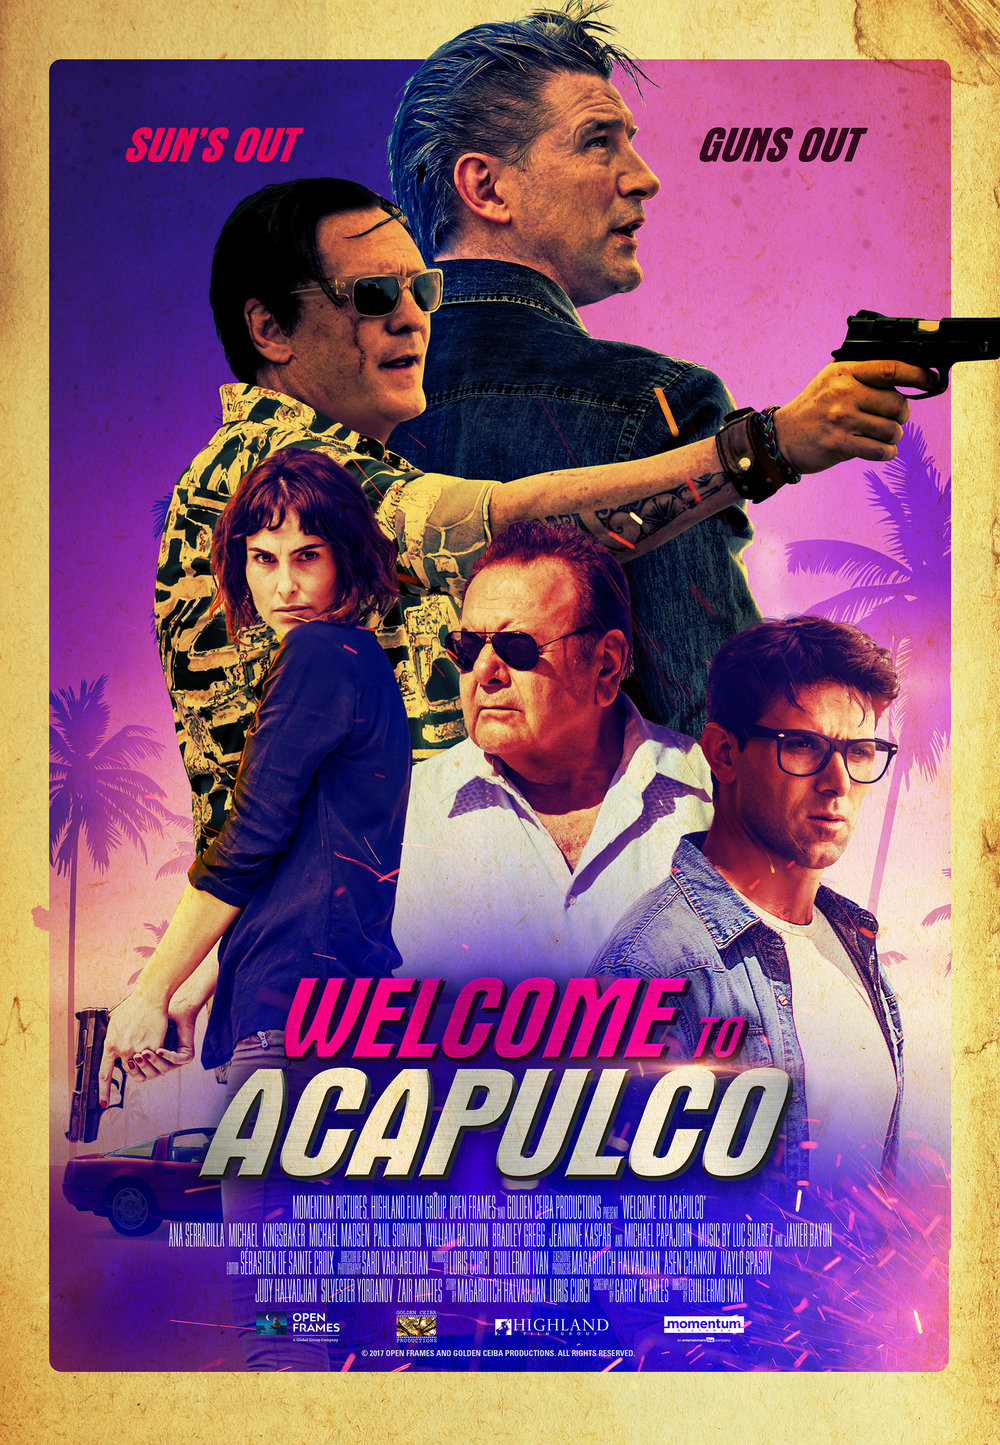 WelcomeToAcupulco_Theatrical.jpg